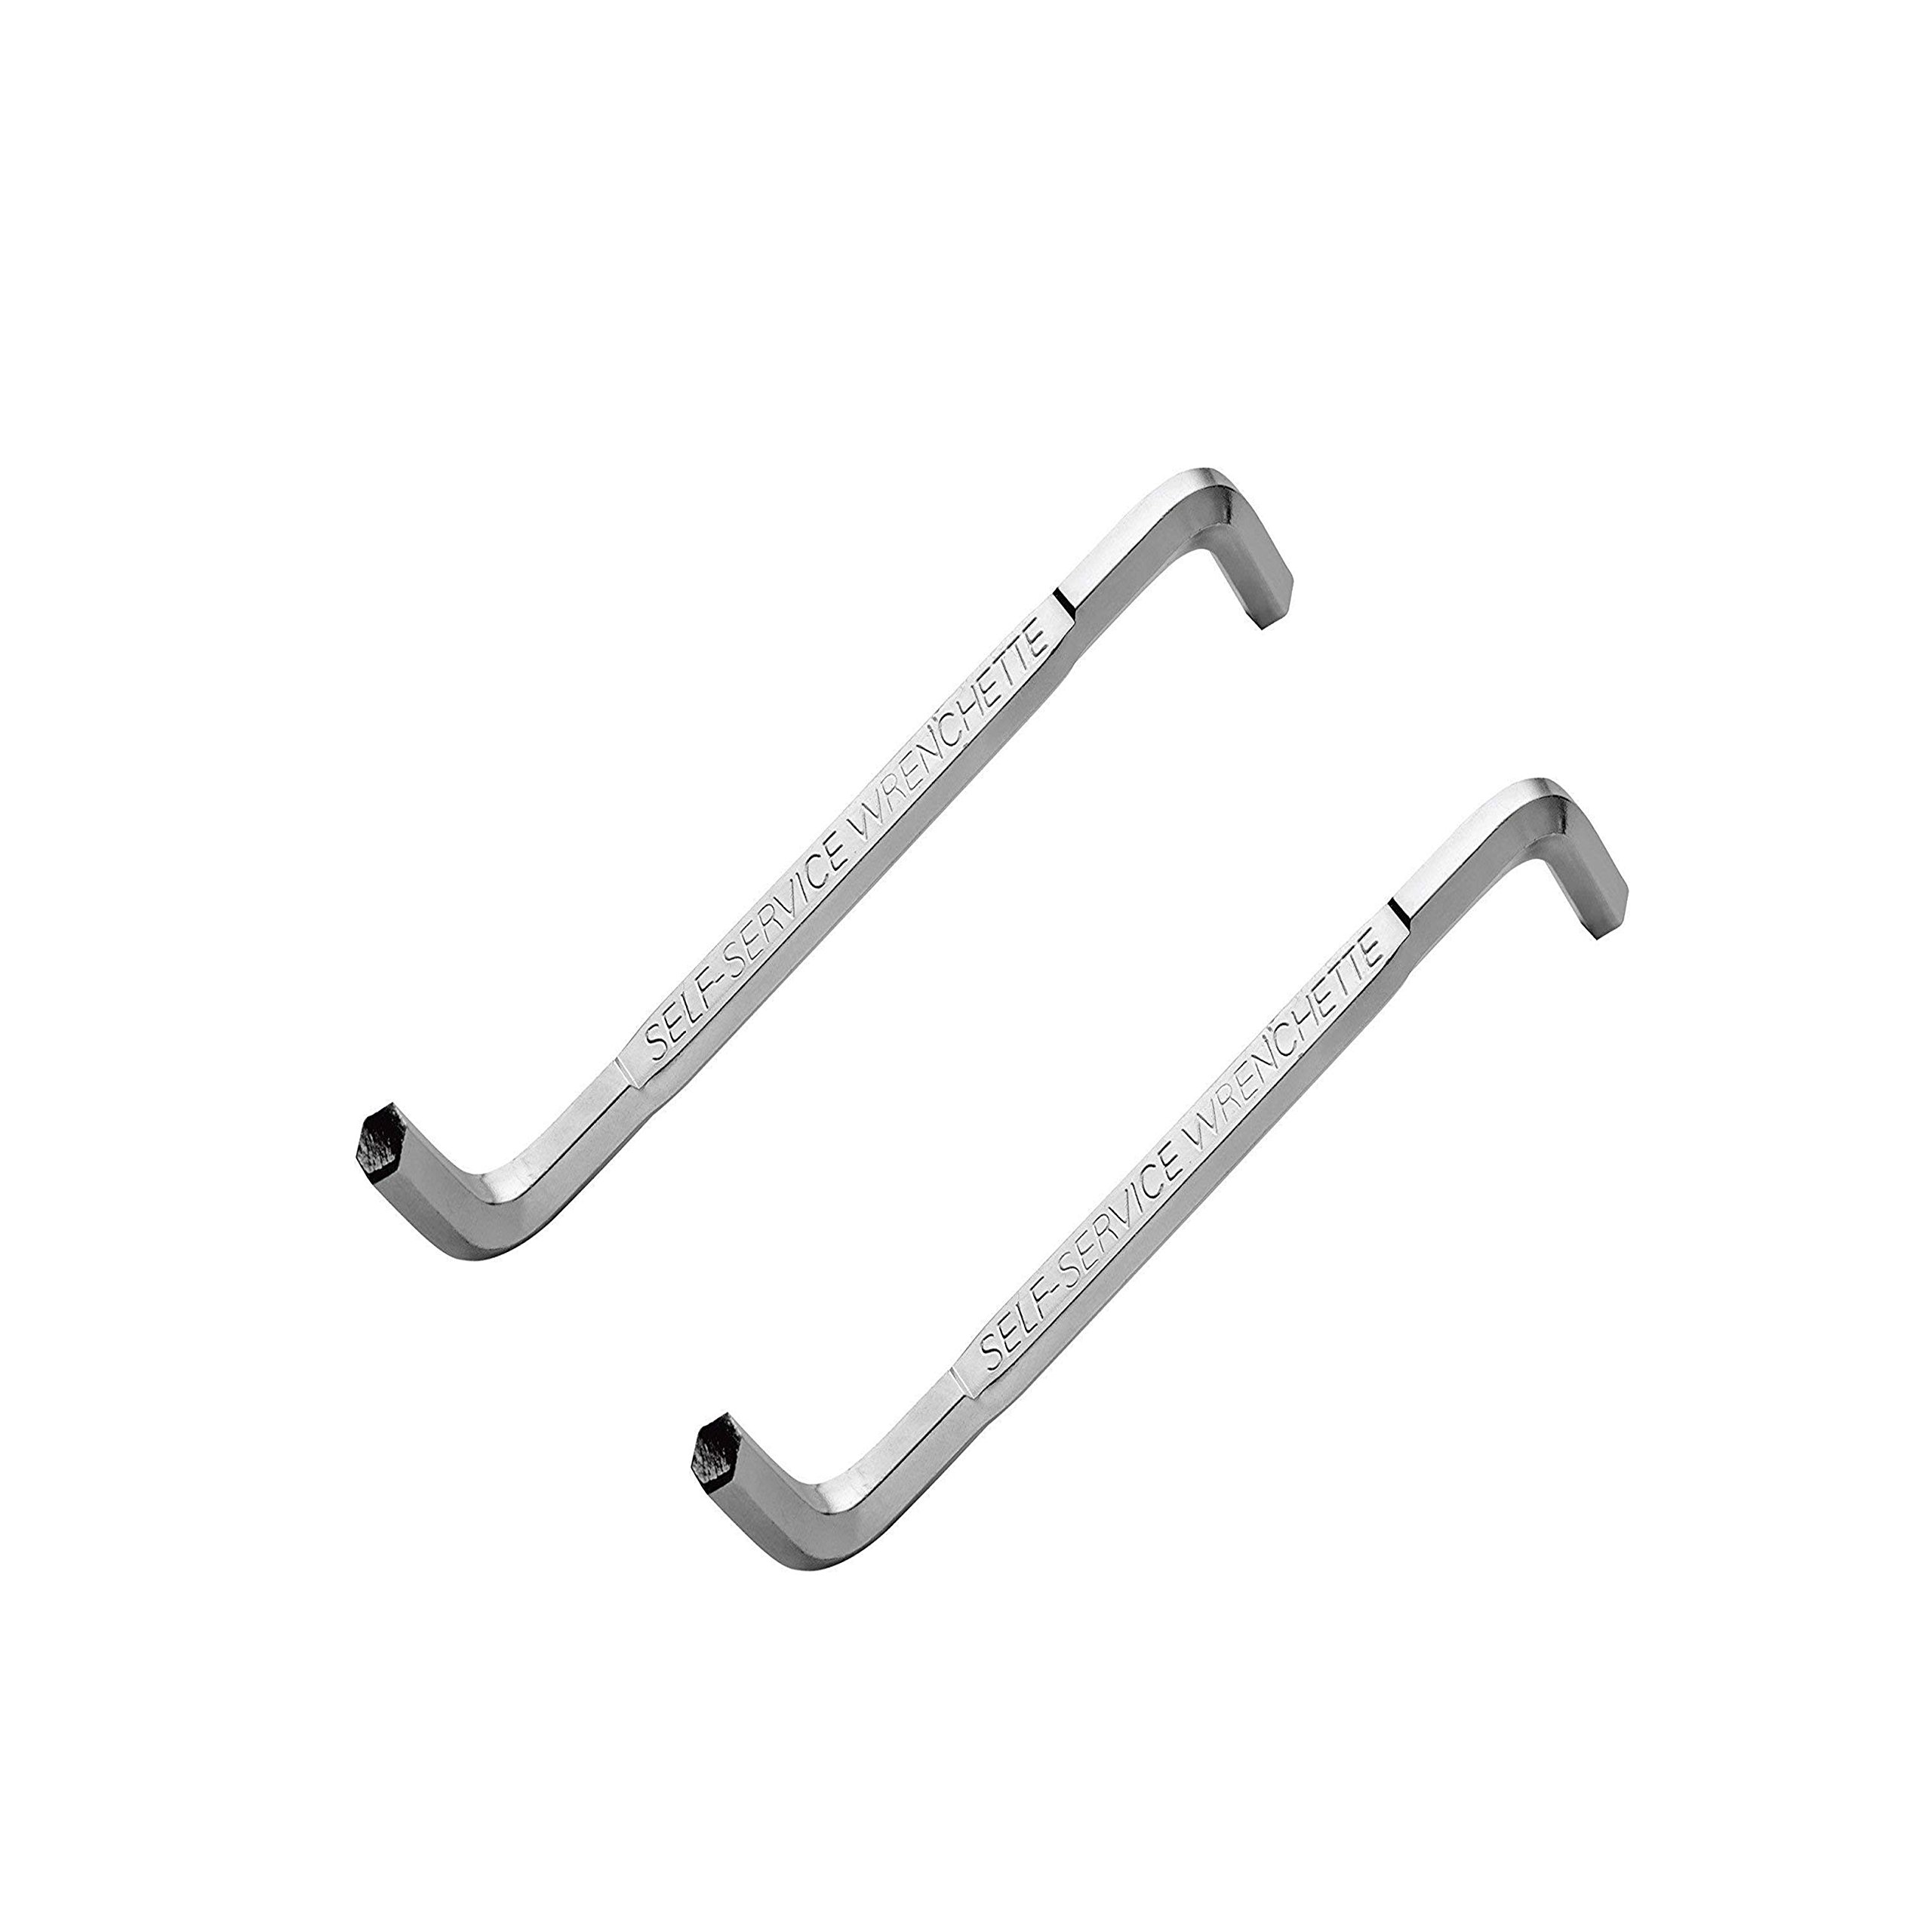 Waste Disposer Wrench Jam Buster Wrenchette for InSinkErator WRN-00 Garbage Disposal (2 pack)